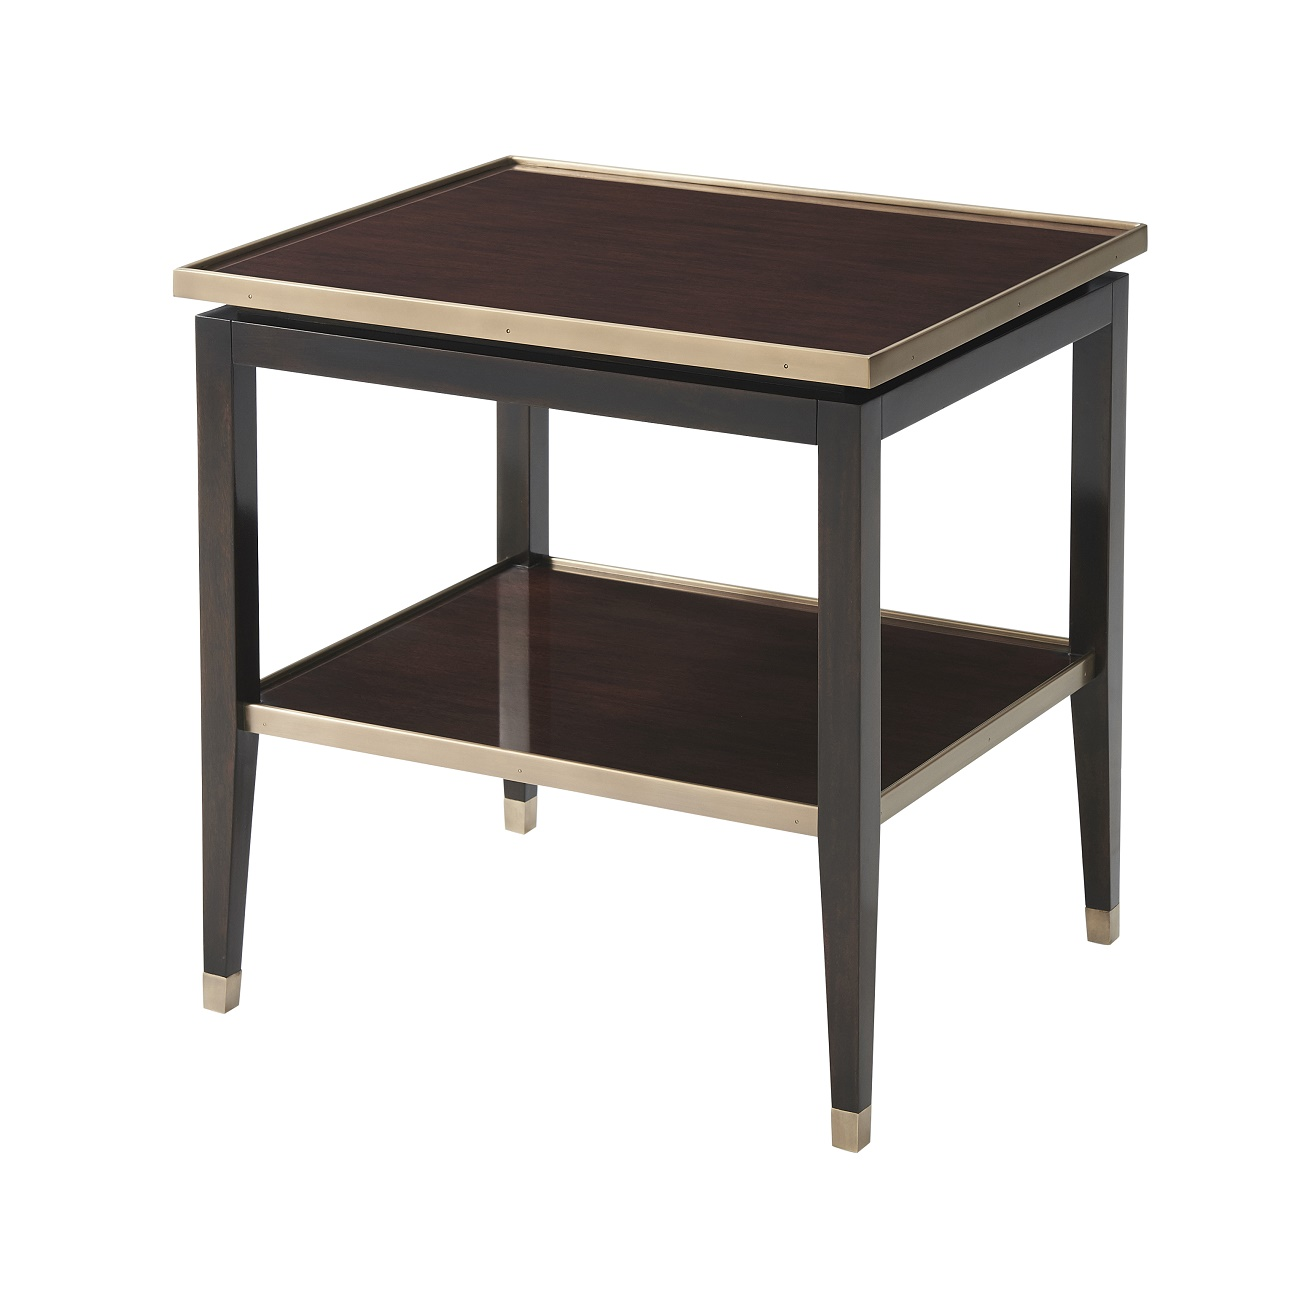 KENO5041 Lynx II Accent Table Theodore Alexander